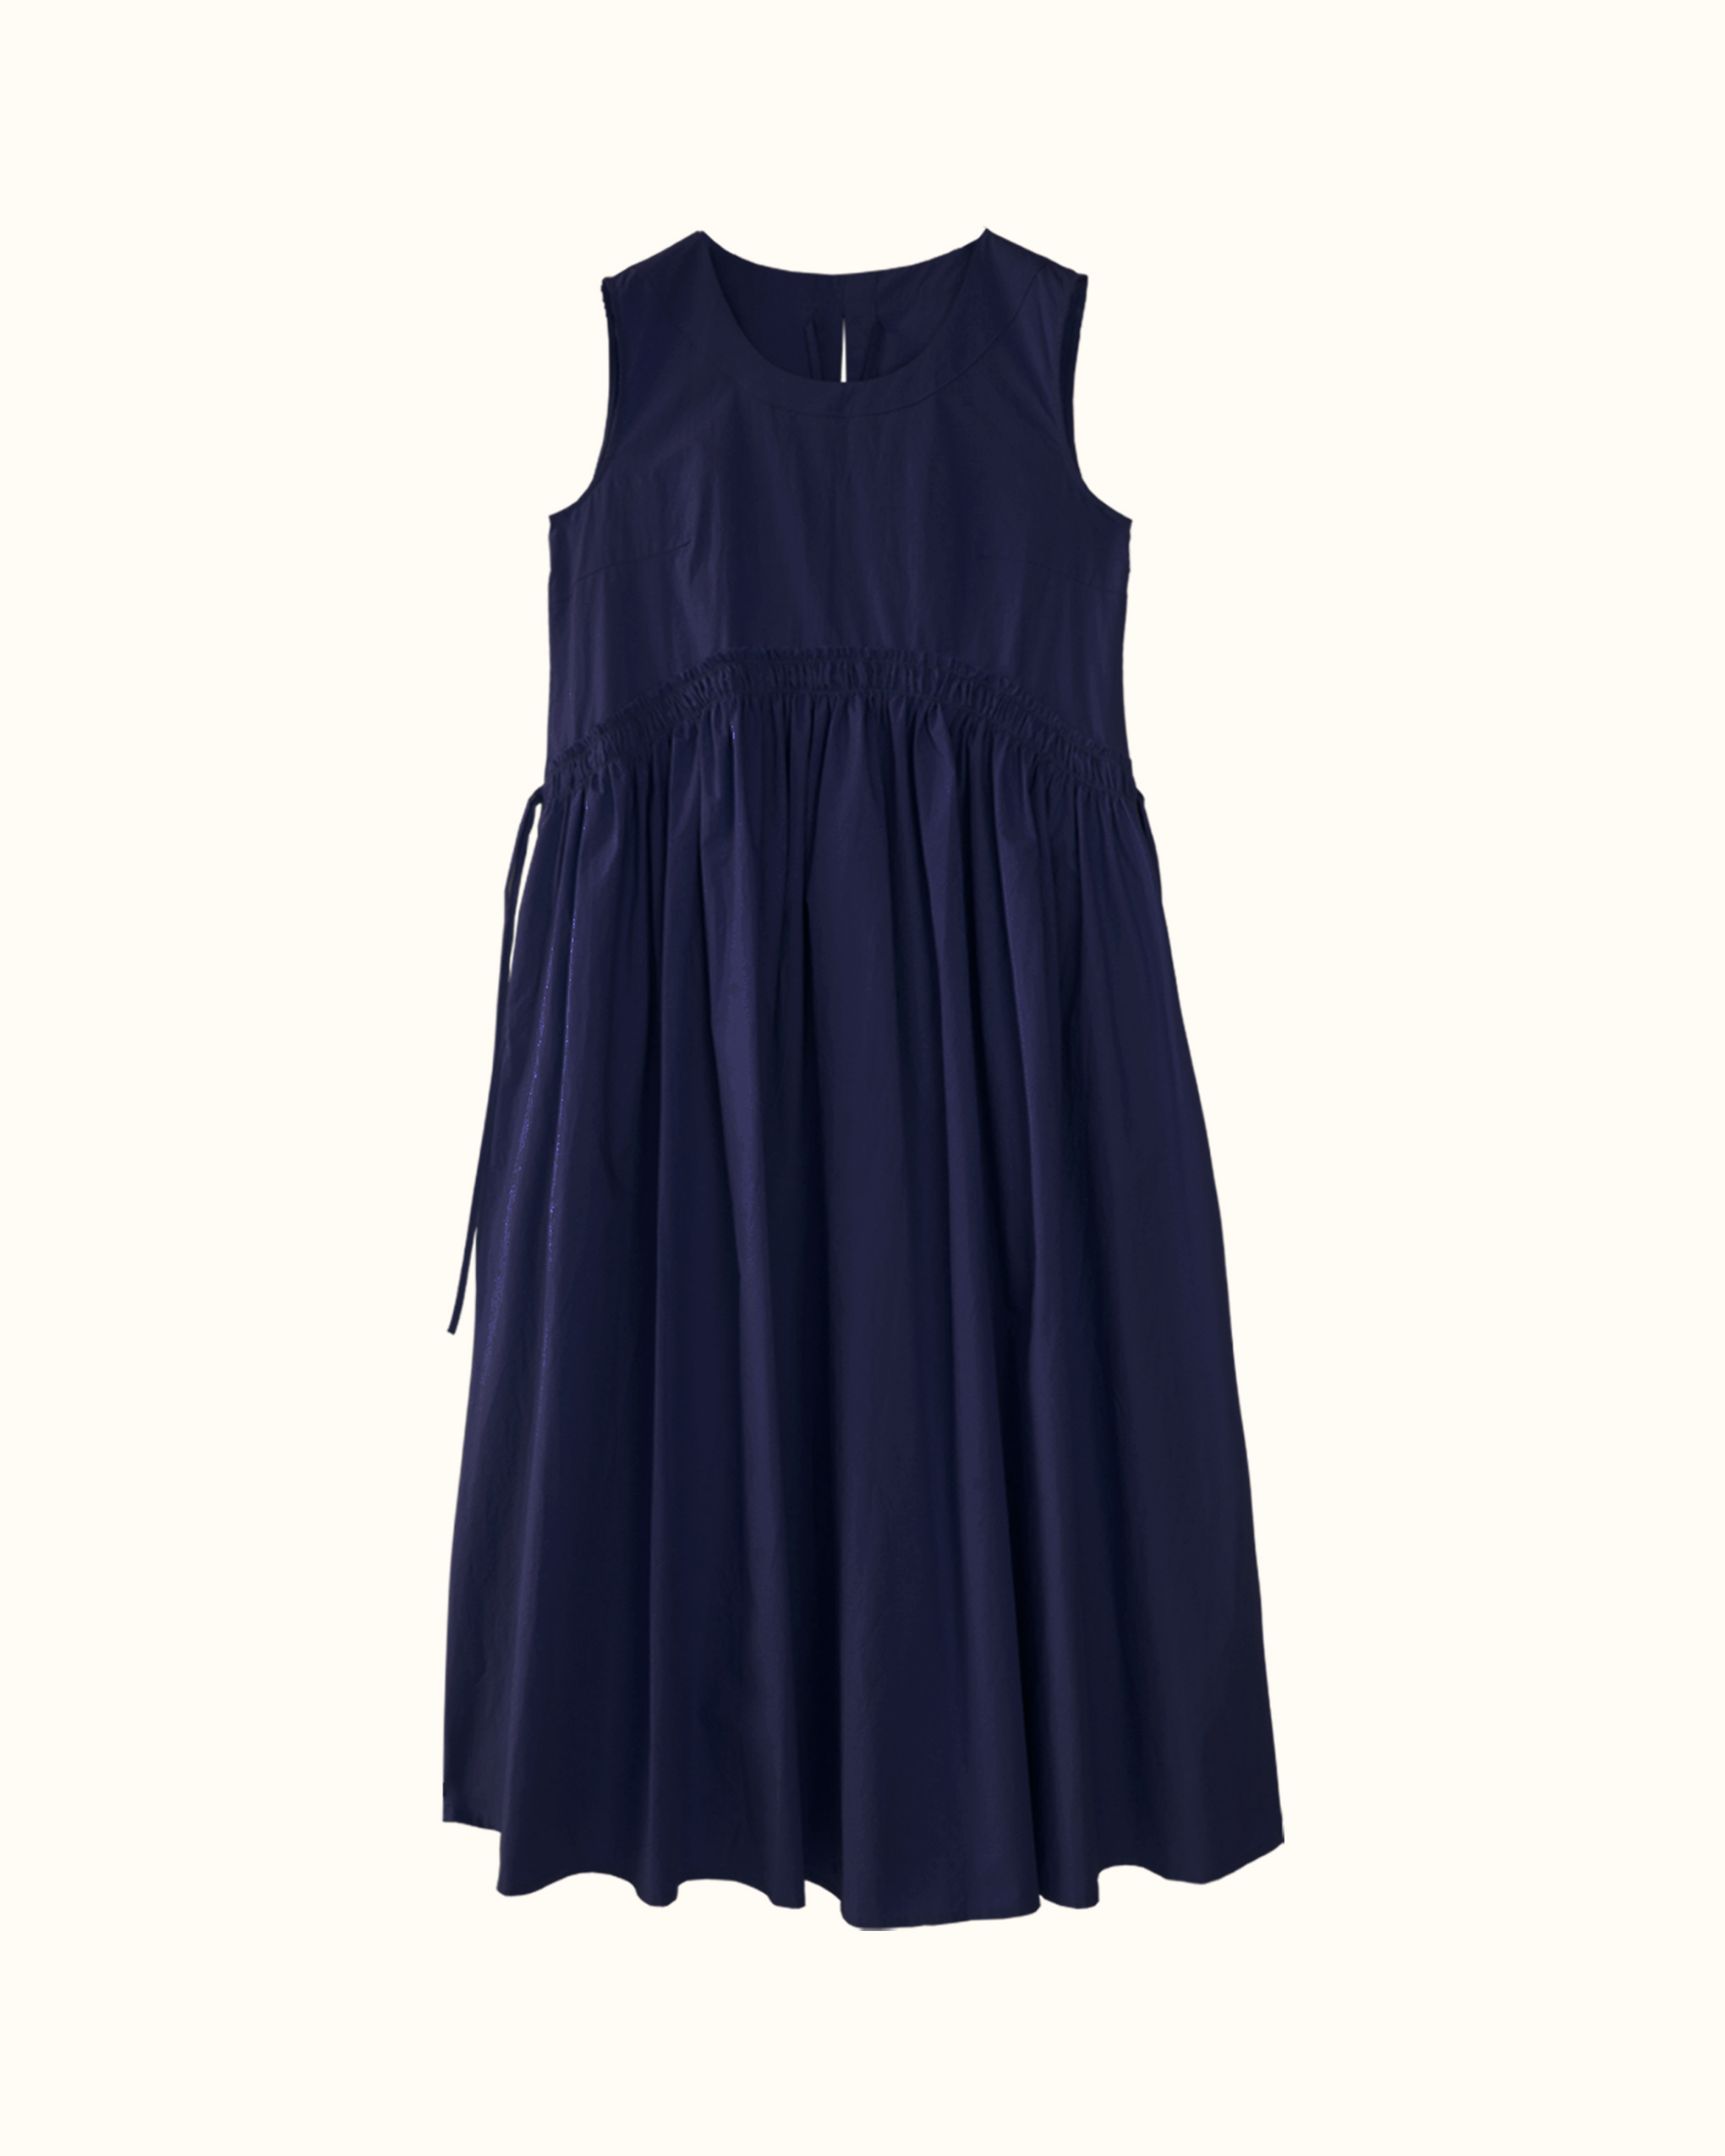 A navy curved shirred waist side tie dress.